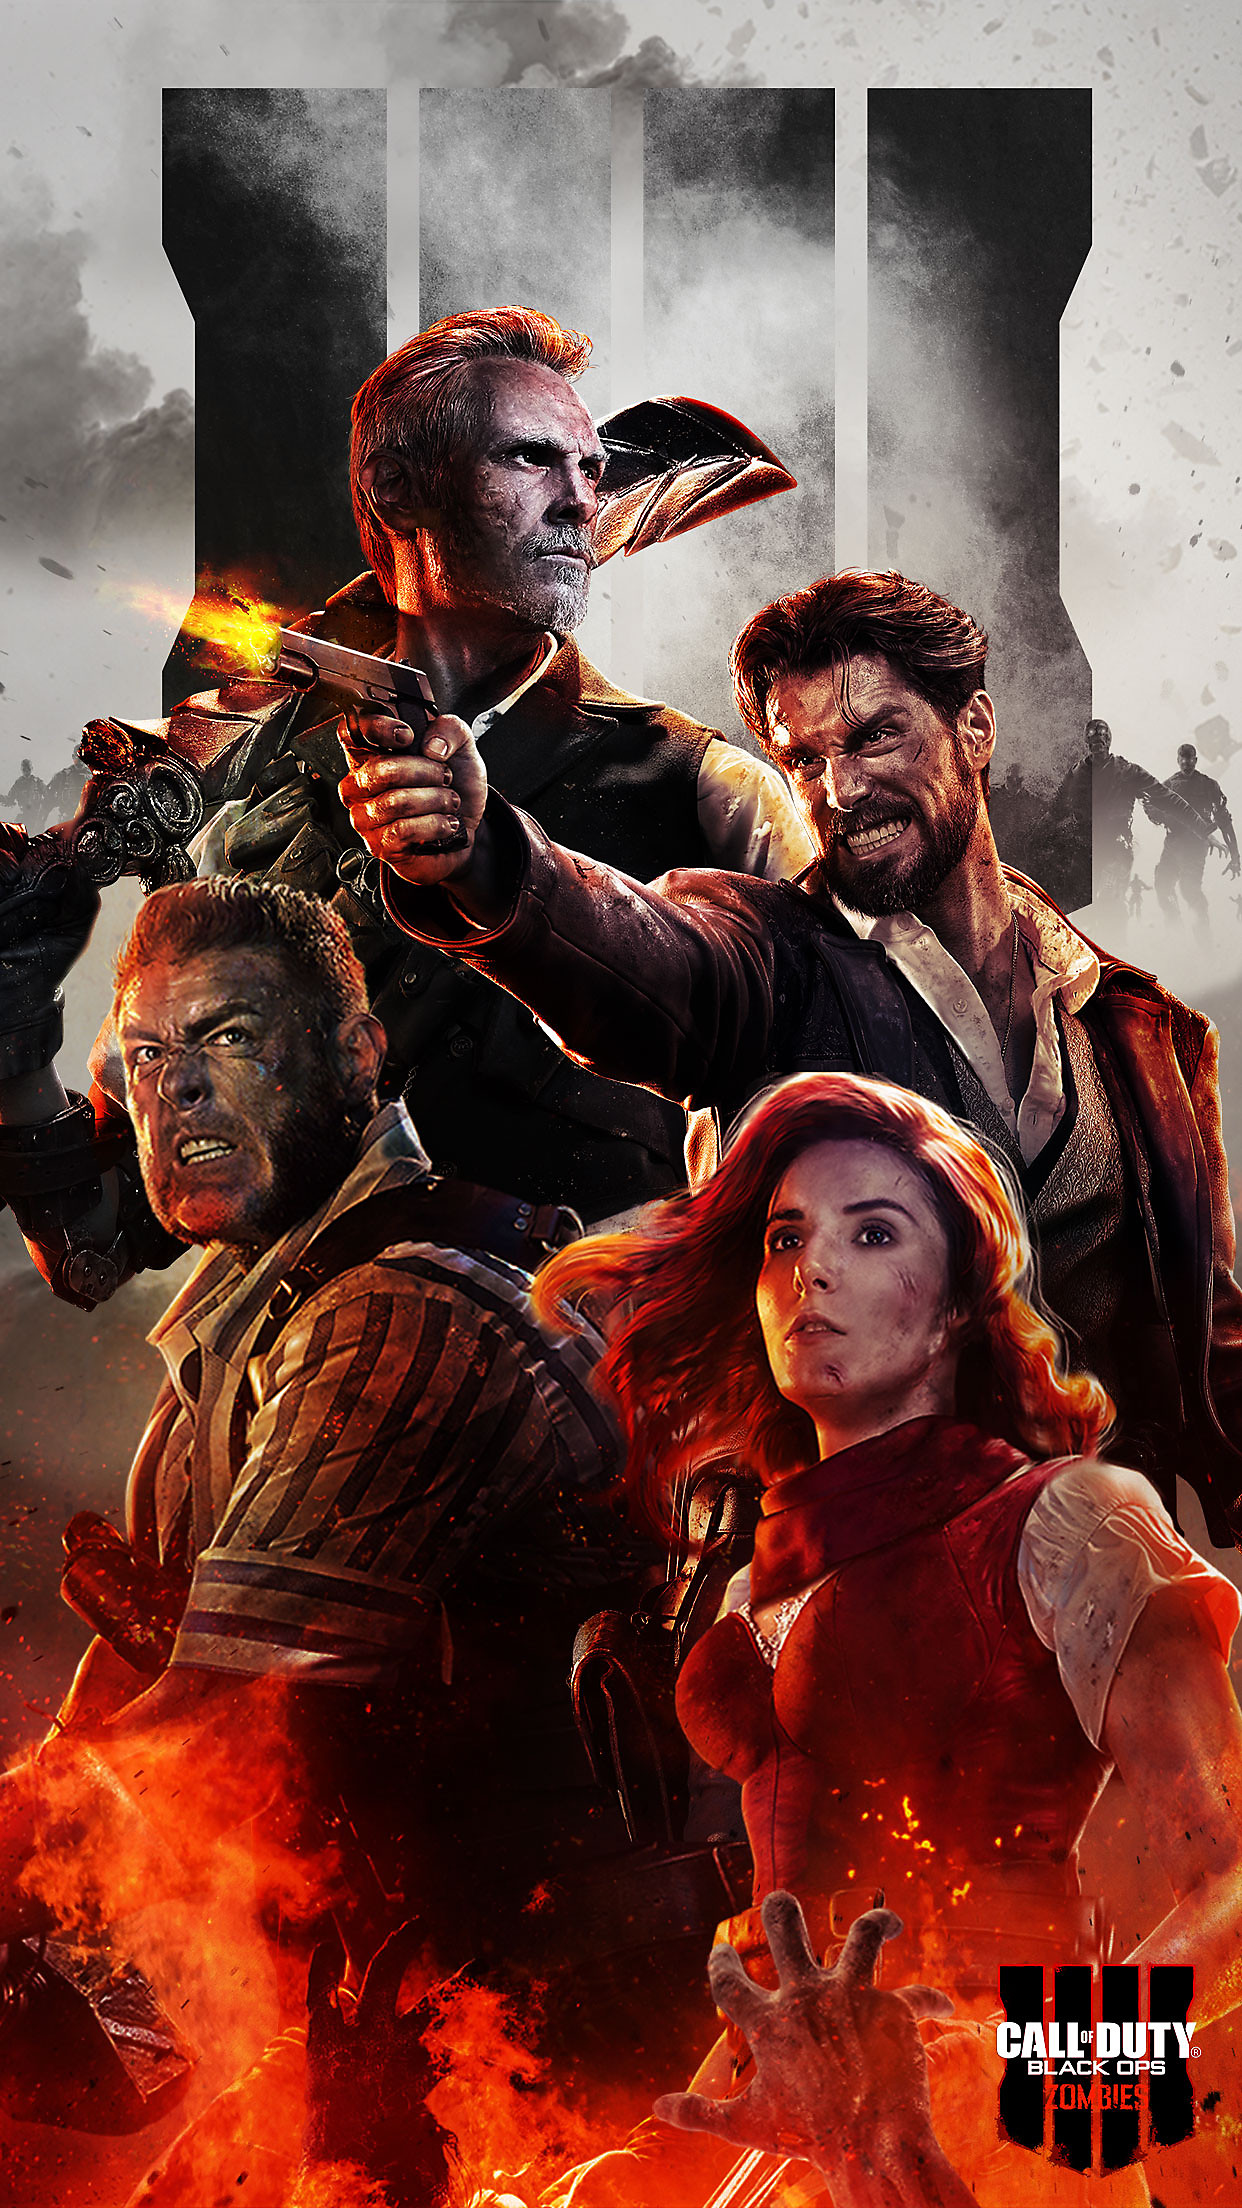 Call of Duty: Black Ops 4 Zombies Mobile Wallpaper 1